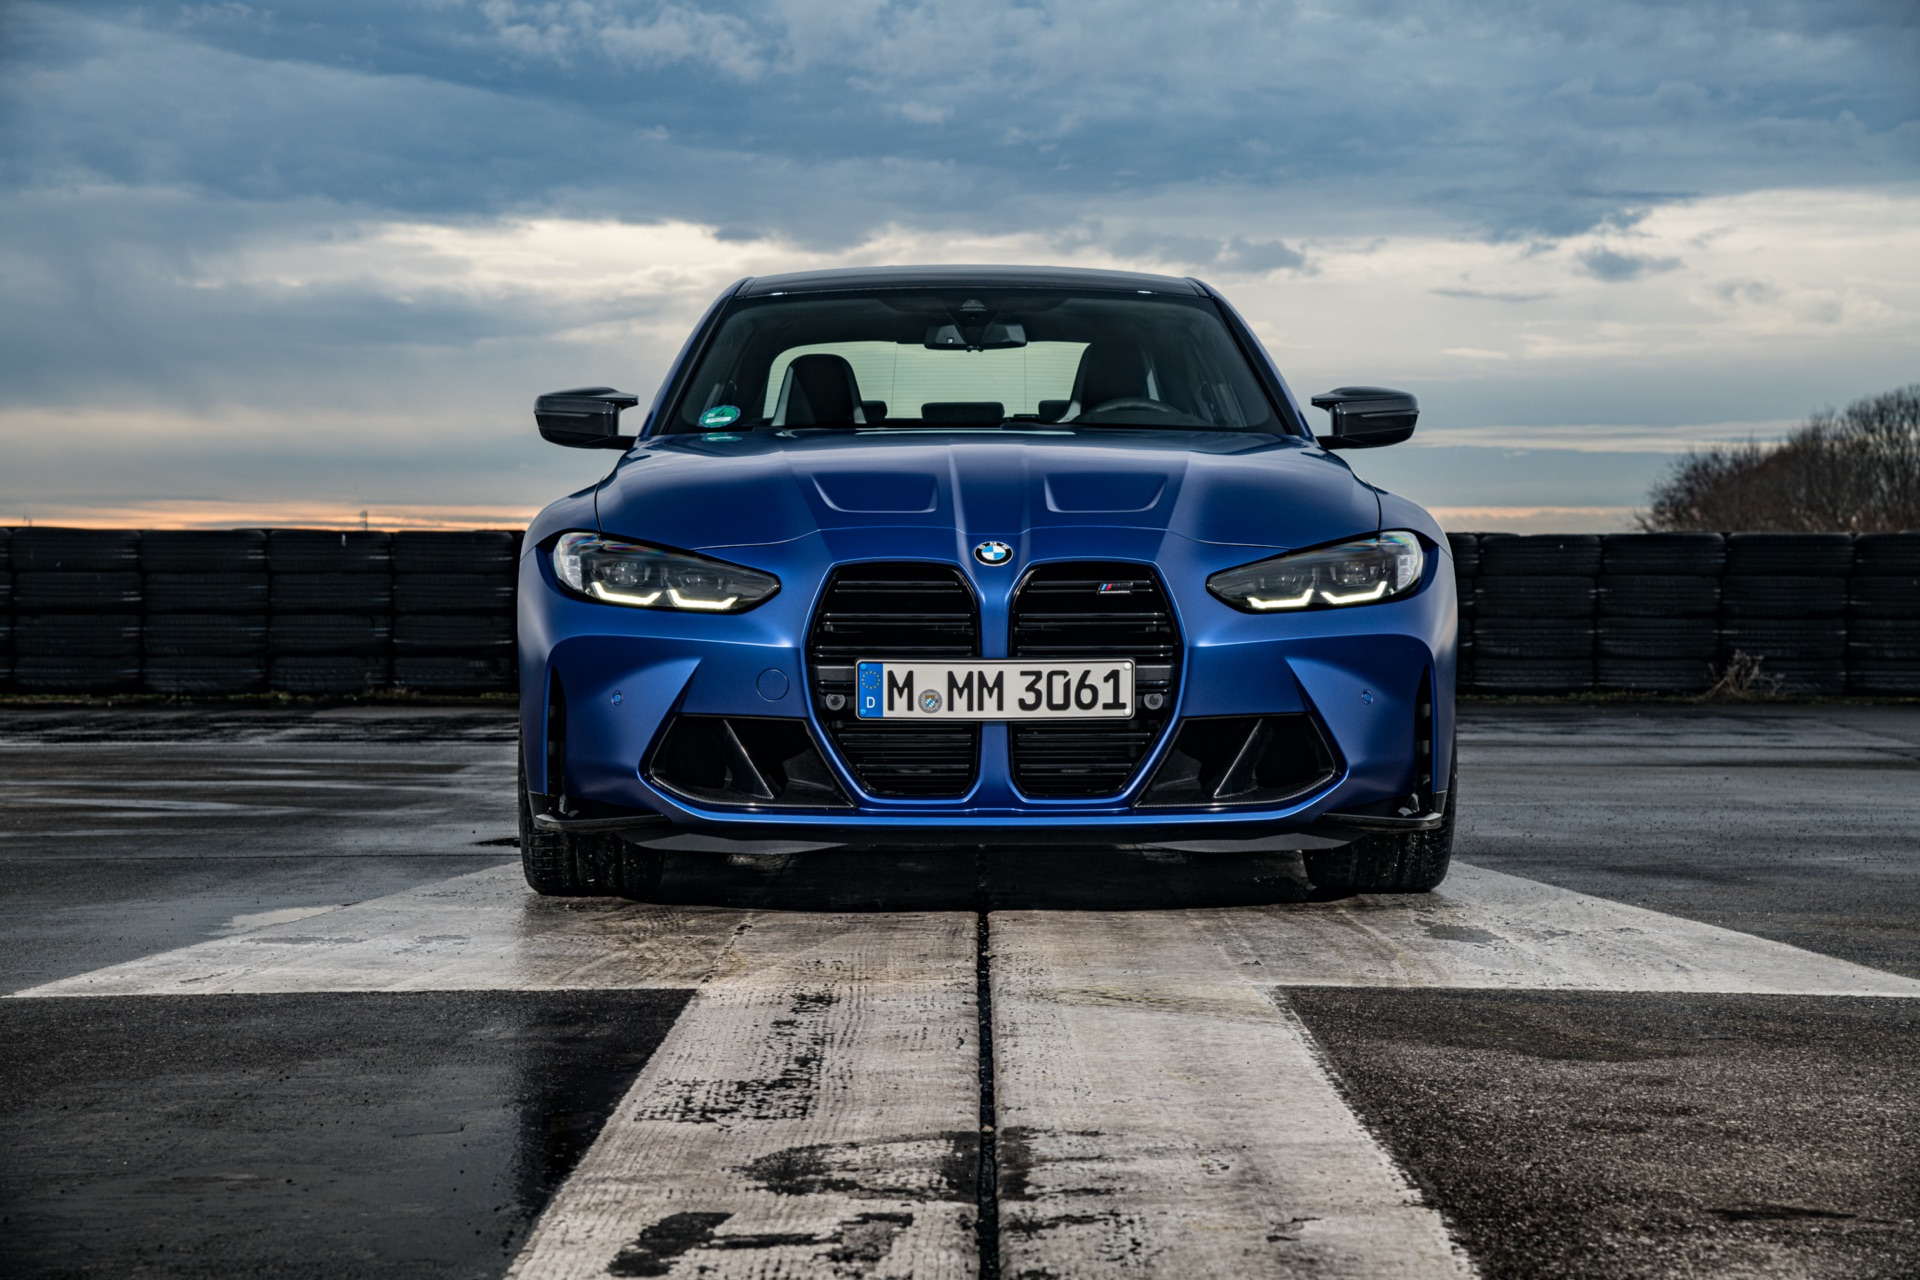 Portimao Blue BMW G80 M3 front view